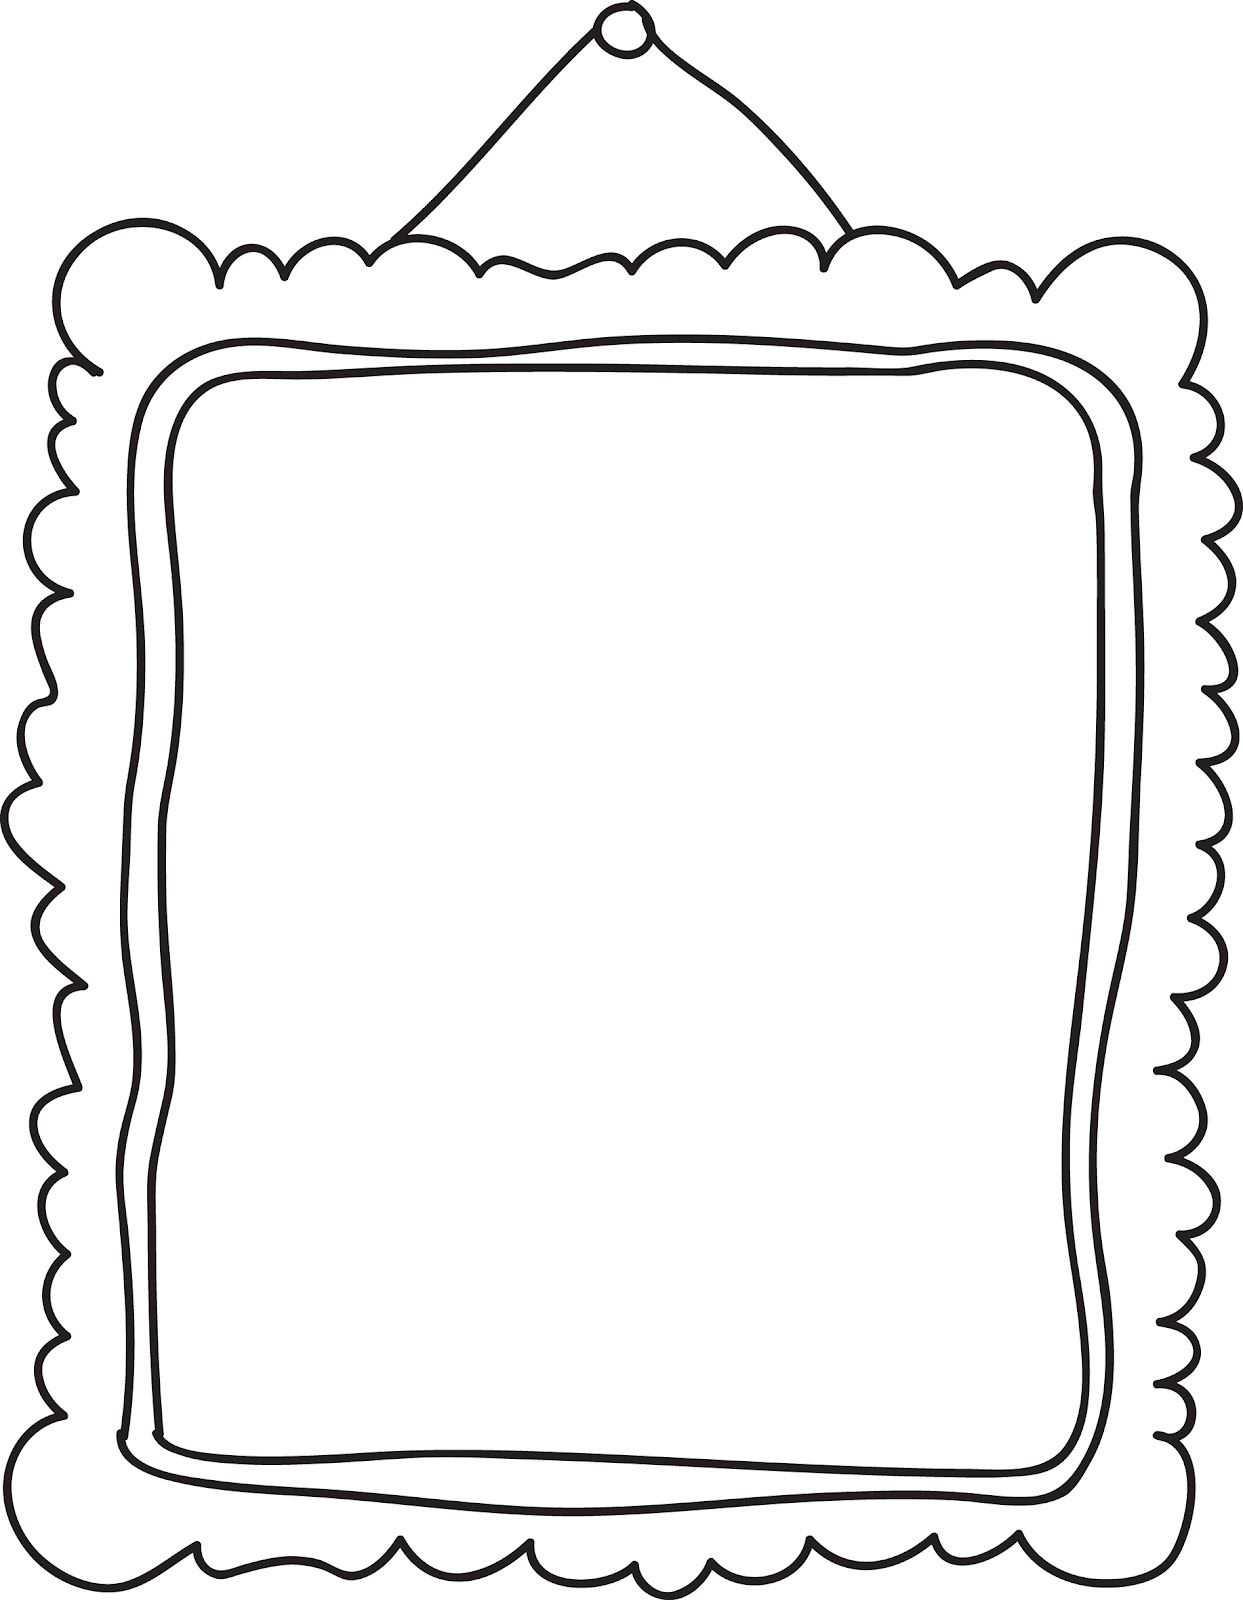 hight resolution of digital frames vector clipart black and white google search